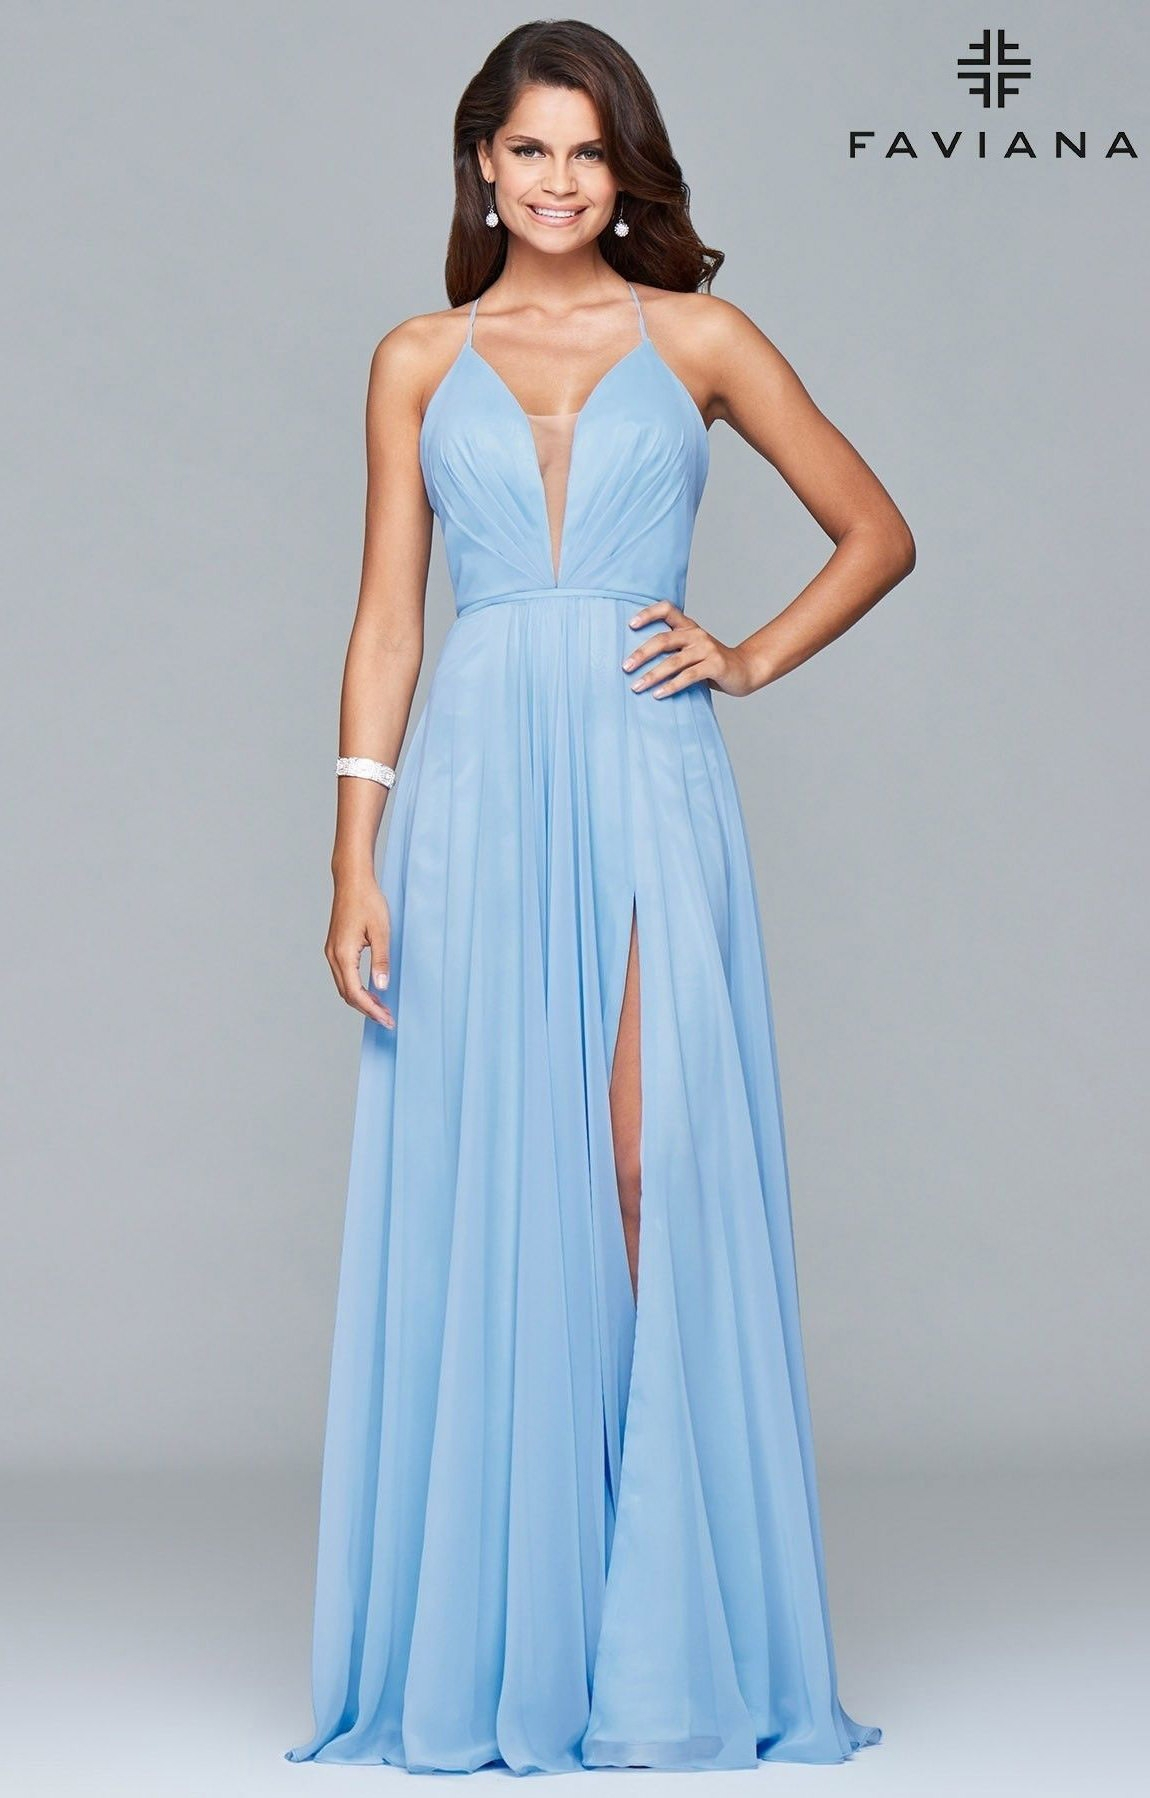 Faviana 7747 - Open Corset Back Dress with Low Neckline Prom Dress